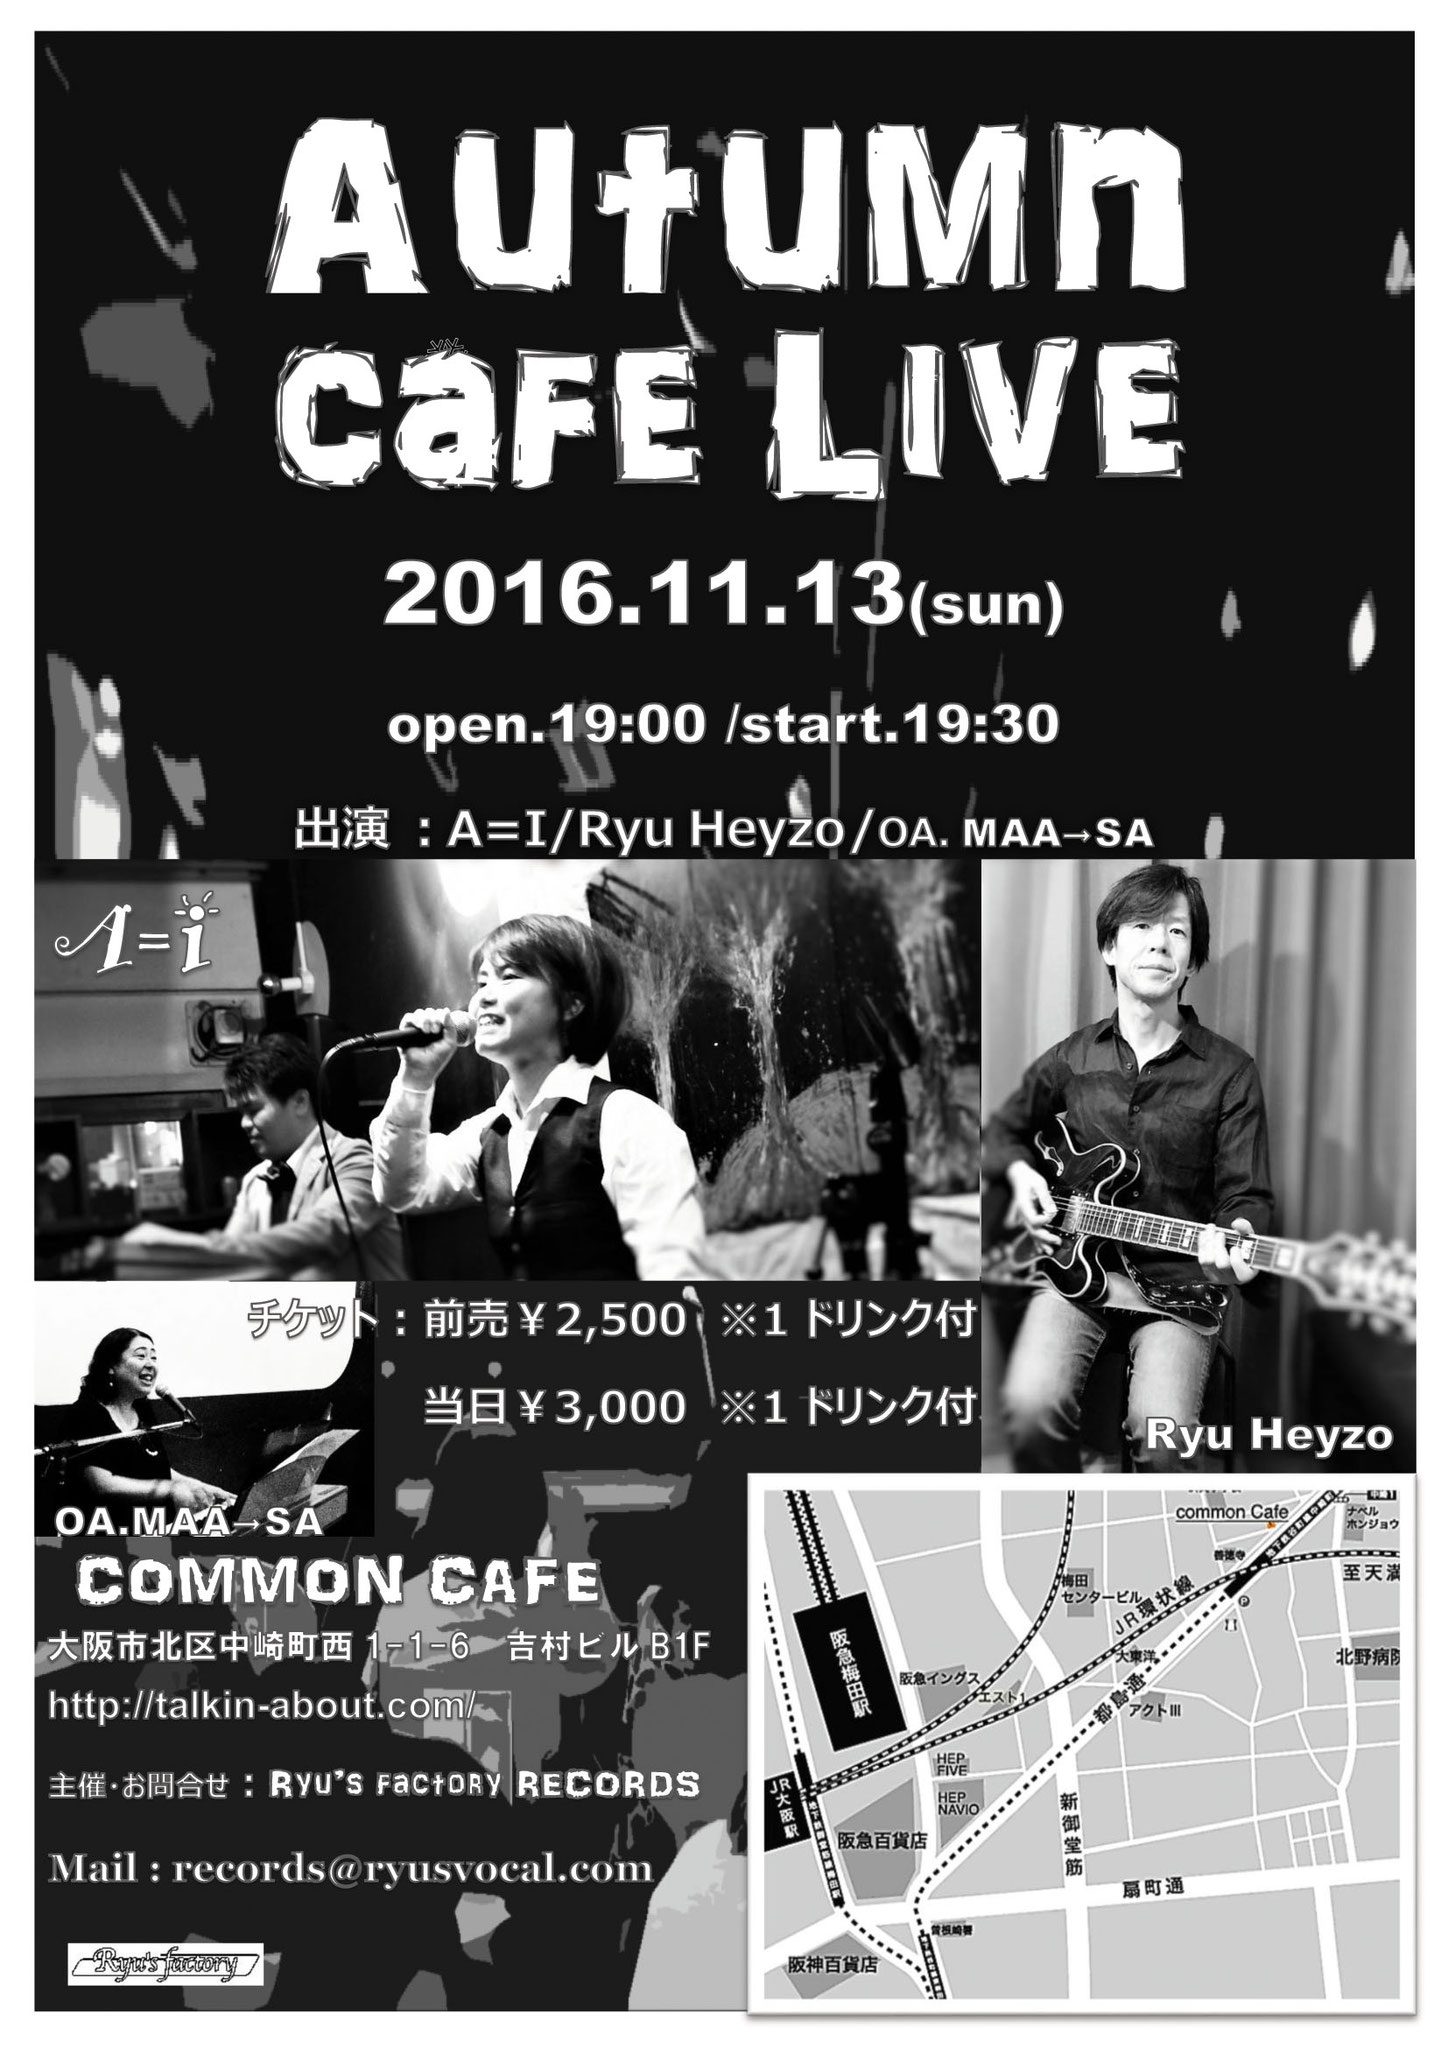 The Autumn Cafe LIVE